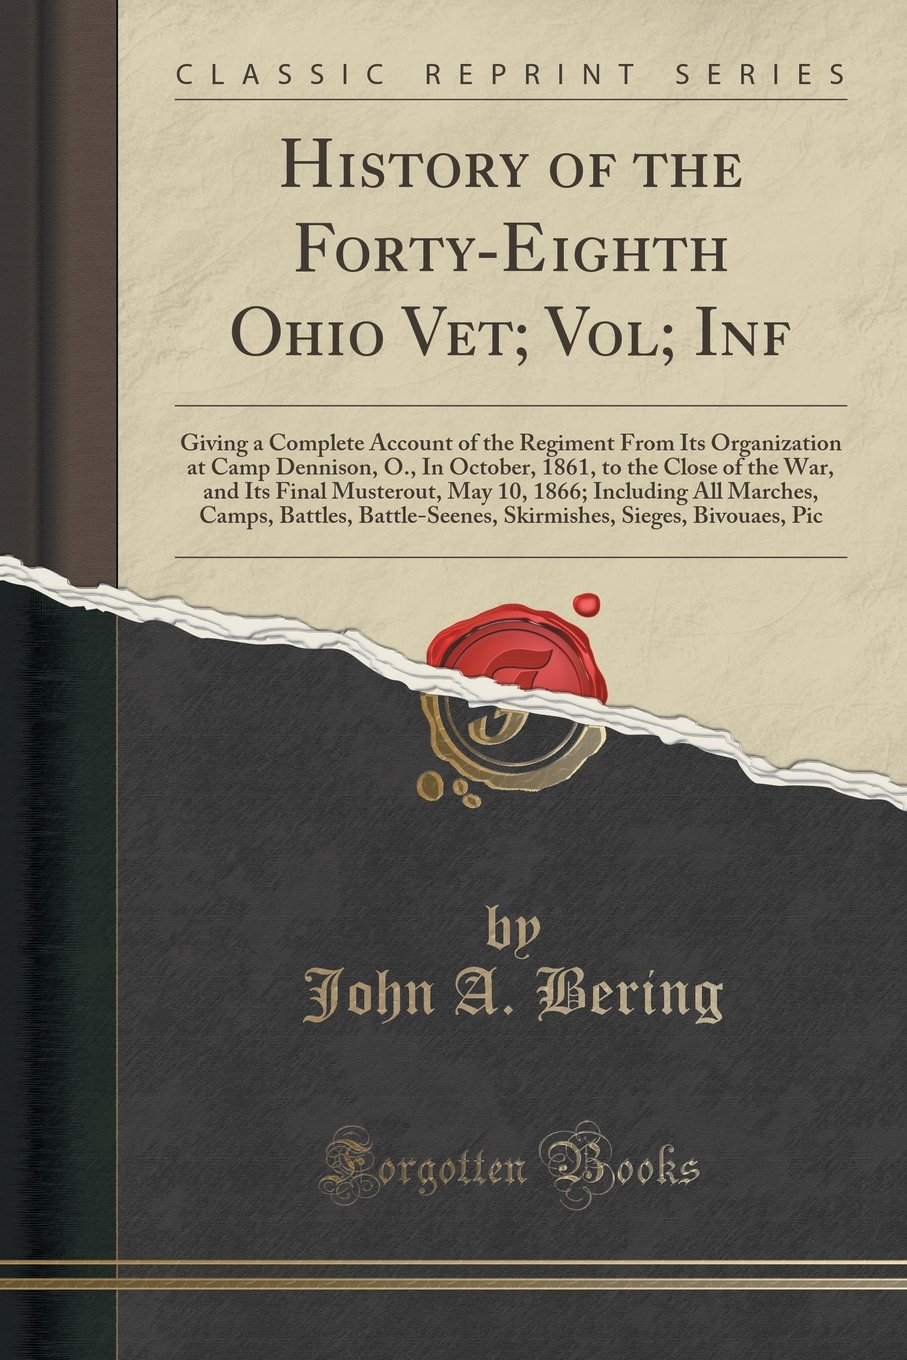 Download History of the Forty-Eighth Ohio Vet; Vol; Inf: Giving a Complete Account of the Regiment From Its Organization at Camp Dennison, O., In October, ... 1866; Including All Marches, Camps, Battles, PDF